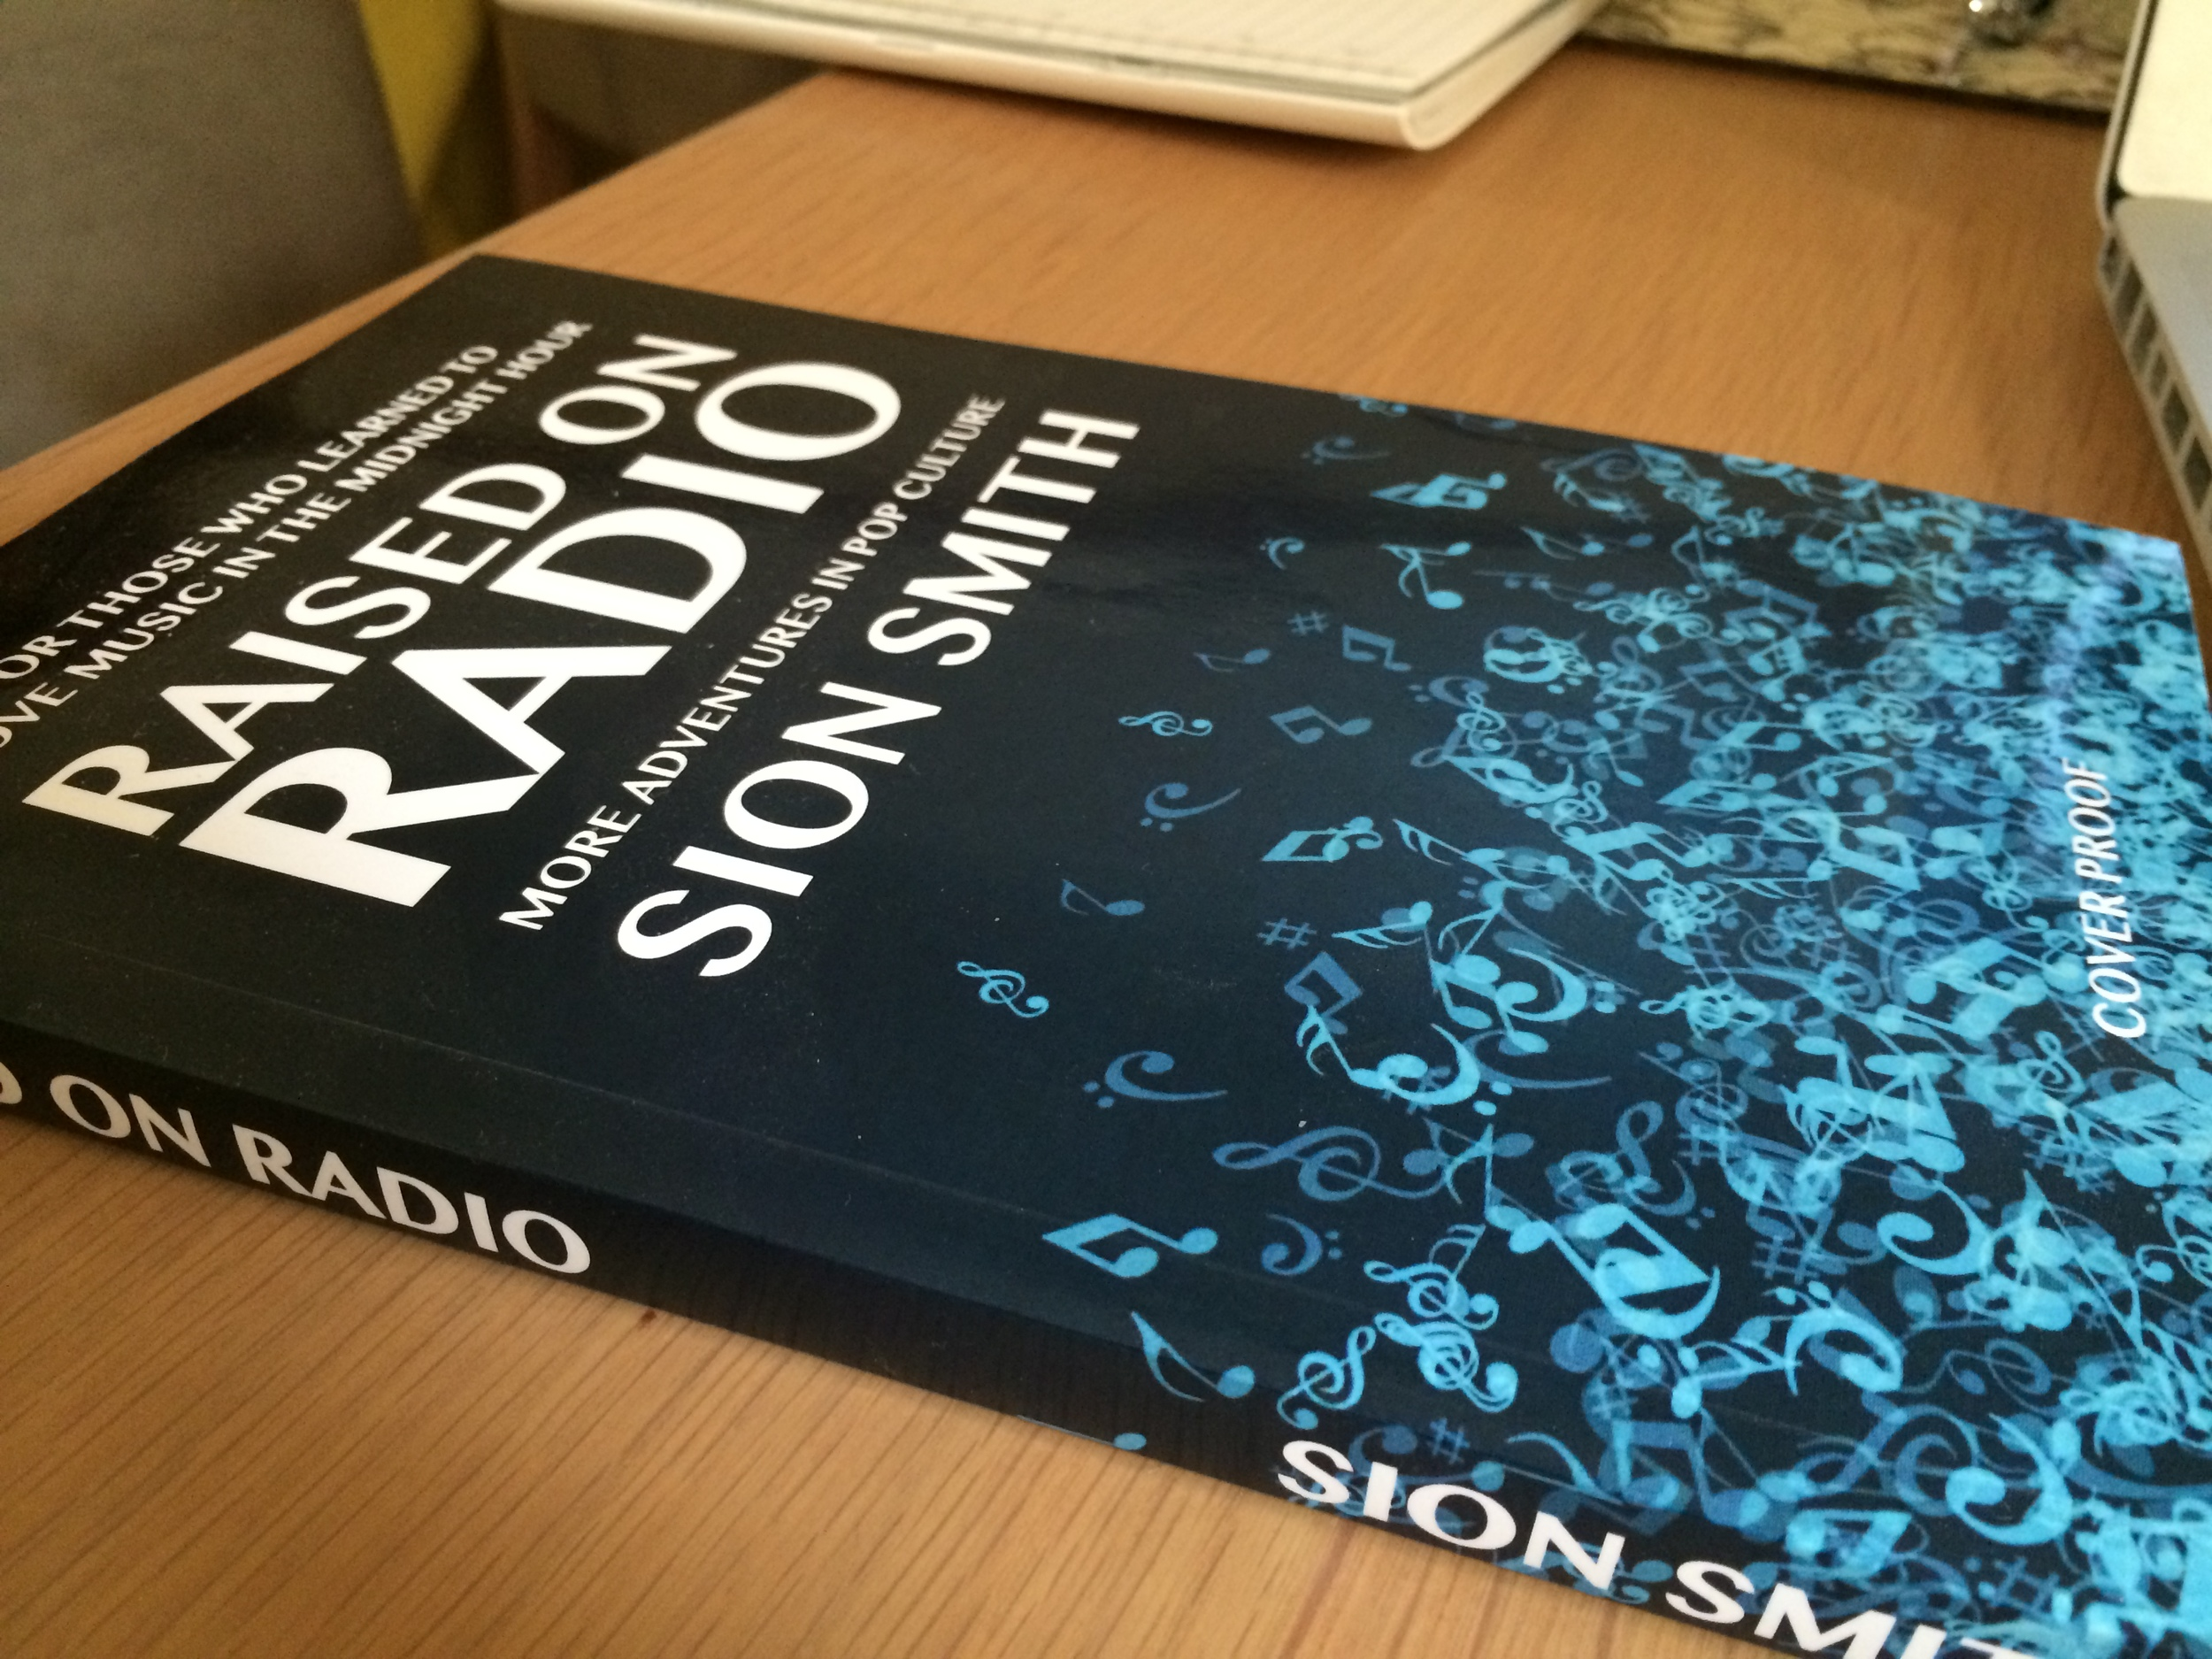 See how Raised on Radio exists in the real world - as a working proof copy anyway.